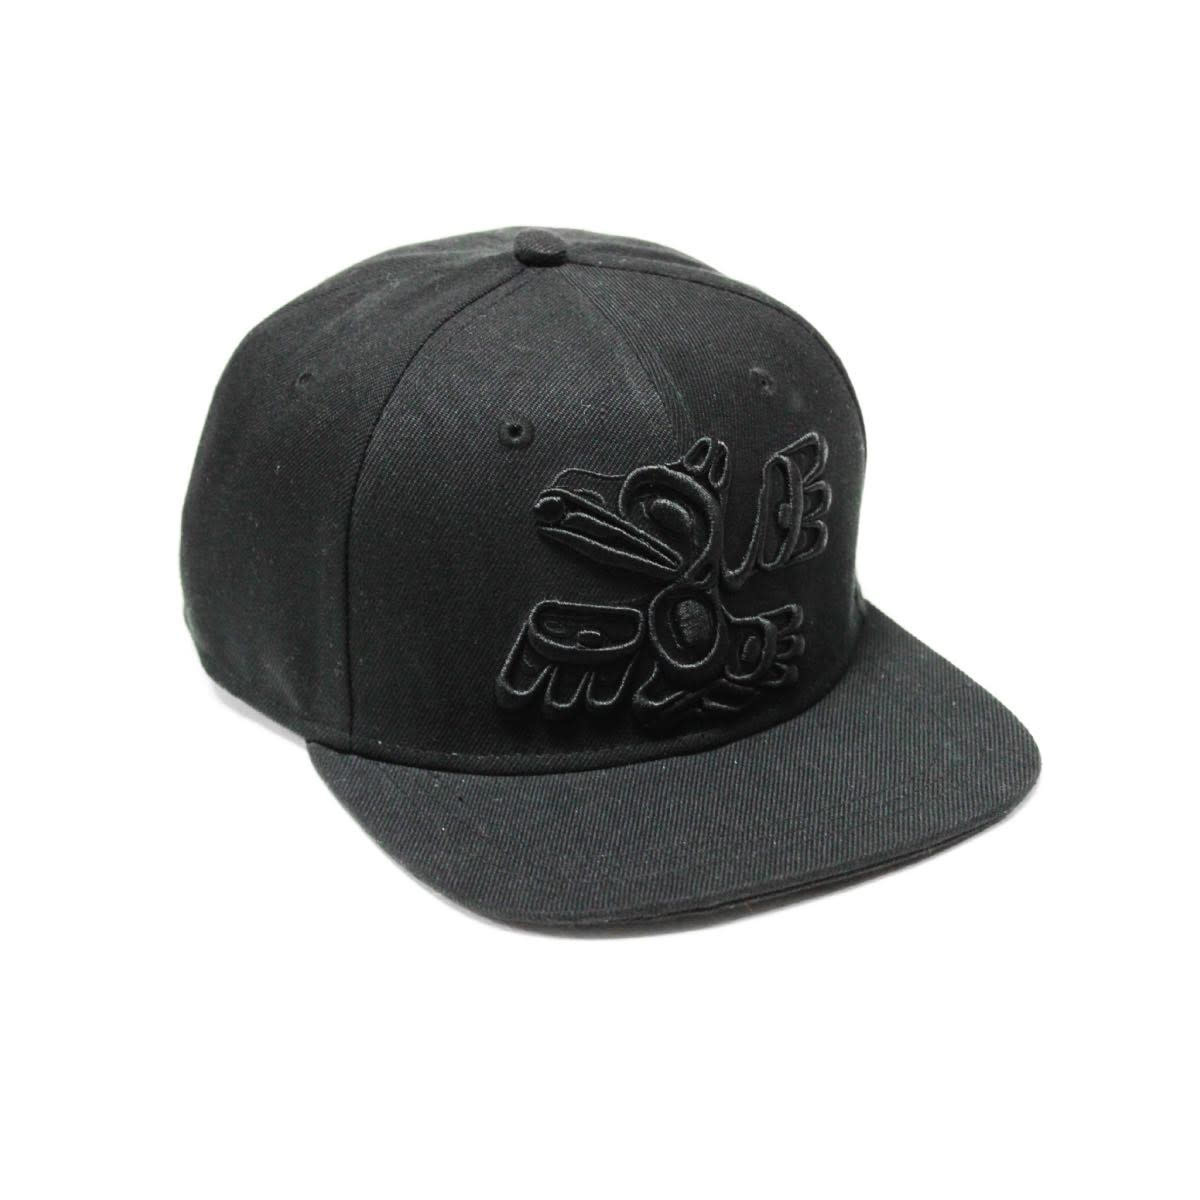 Snap Back Hat-Raven by Allan Weir-1